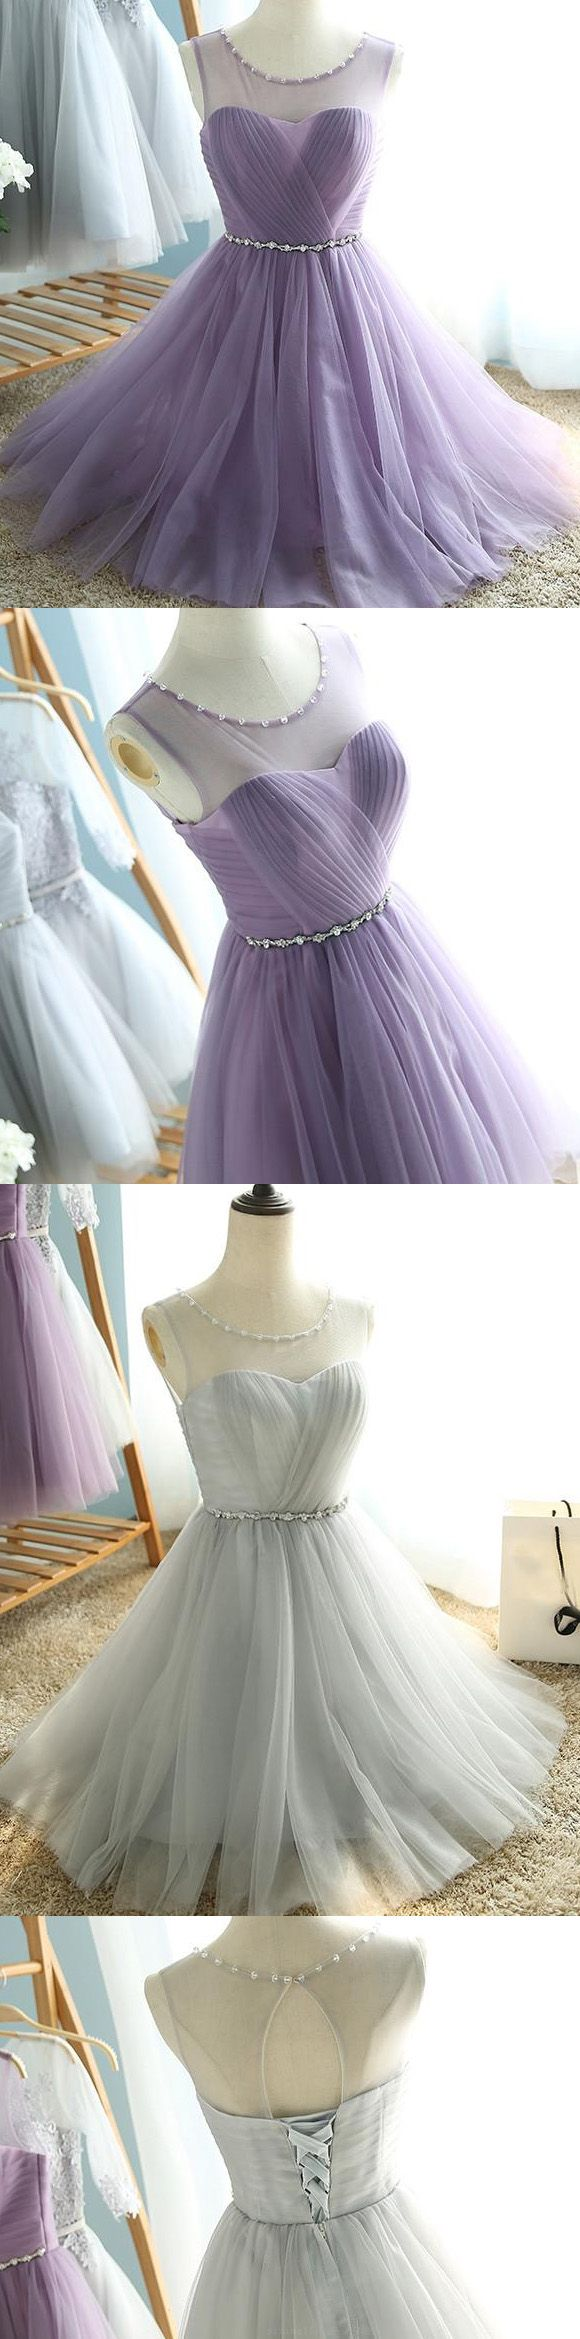 Short Prom Dresses, Blue Prom Dresses, Lace Prom Dresses, Prom Dresses Short, Light Blue Prom Dresses, Lace Homecoming Dresses, Prom Dresses Lace, Prom Short Dresses, Prom Dresses Blue, Light Blue dresses, Short Homecoming Dresses, Blue Lace dresses, Lace Up Prom Dresses, Bandage Homecoming Dresses, Mini Prom Dresses, Round Party Dresses